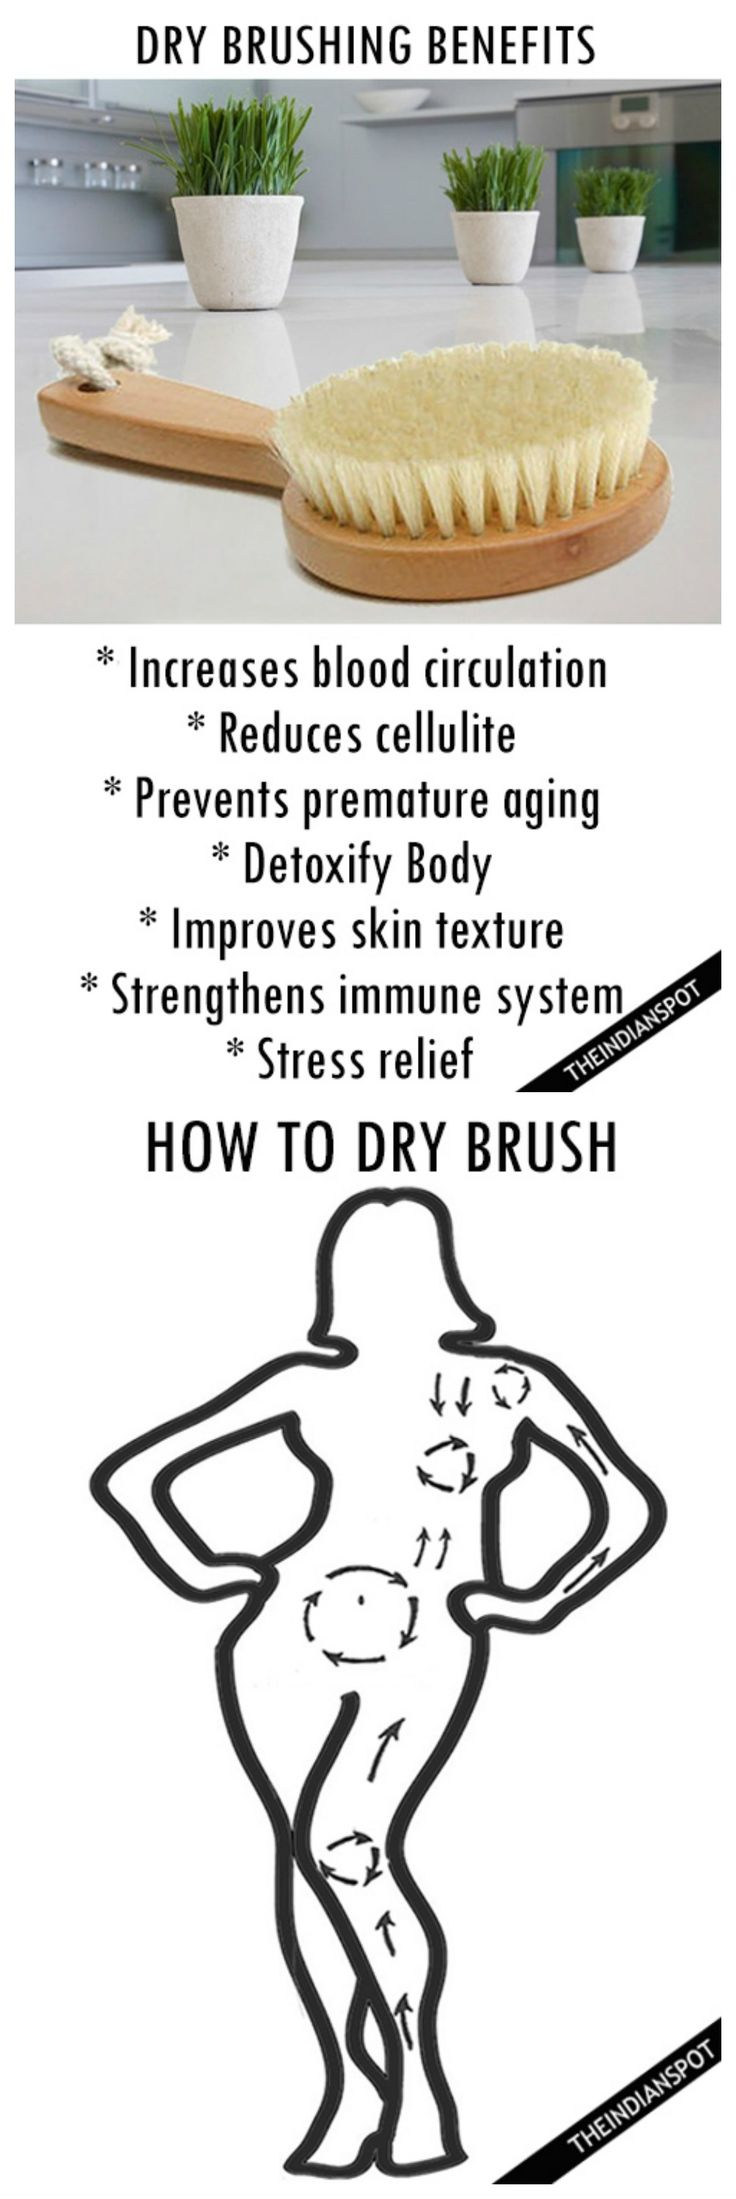 Dry brush your skin for many great benefits ♡ Eyes Lips Nails Makeup Skin Care Hair Care Body Care Tools & Accessories Wigs Teeth Care, dress, clothe, women's fashion, outfit inspiration, pretty clothes, shoes, bags and accessories